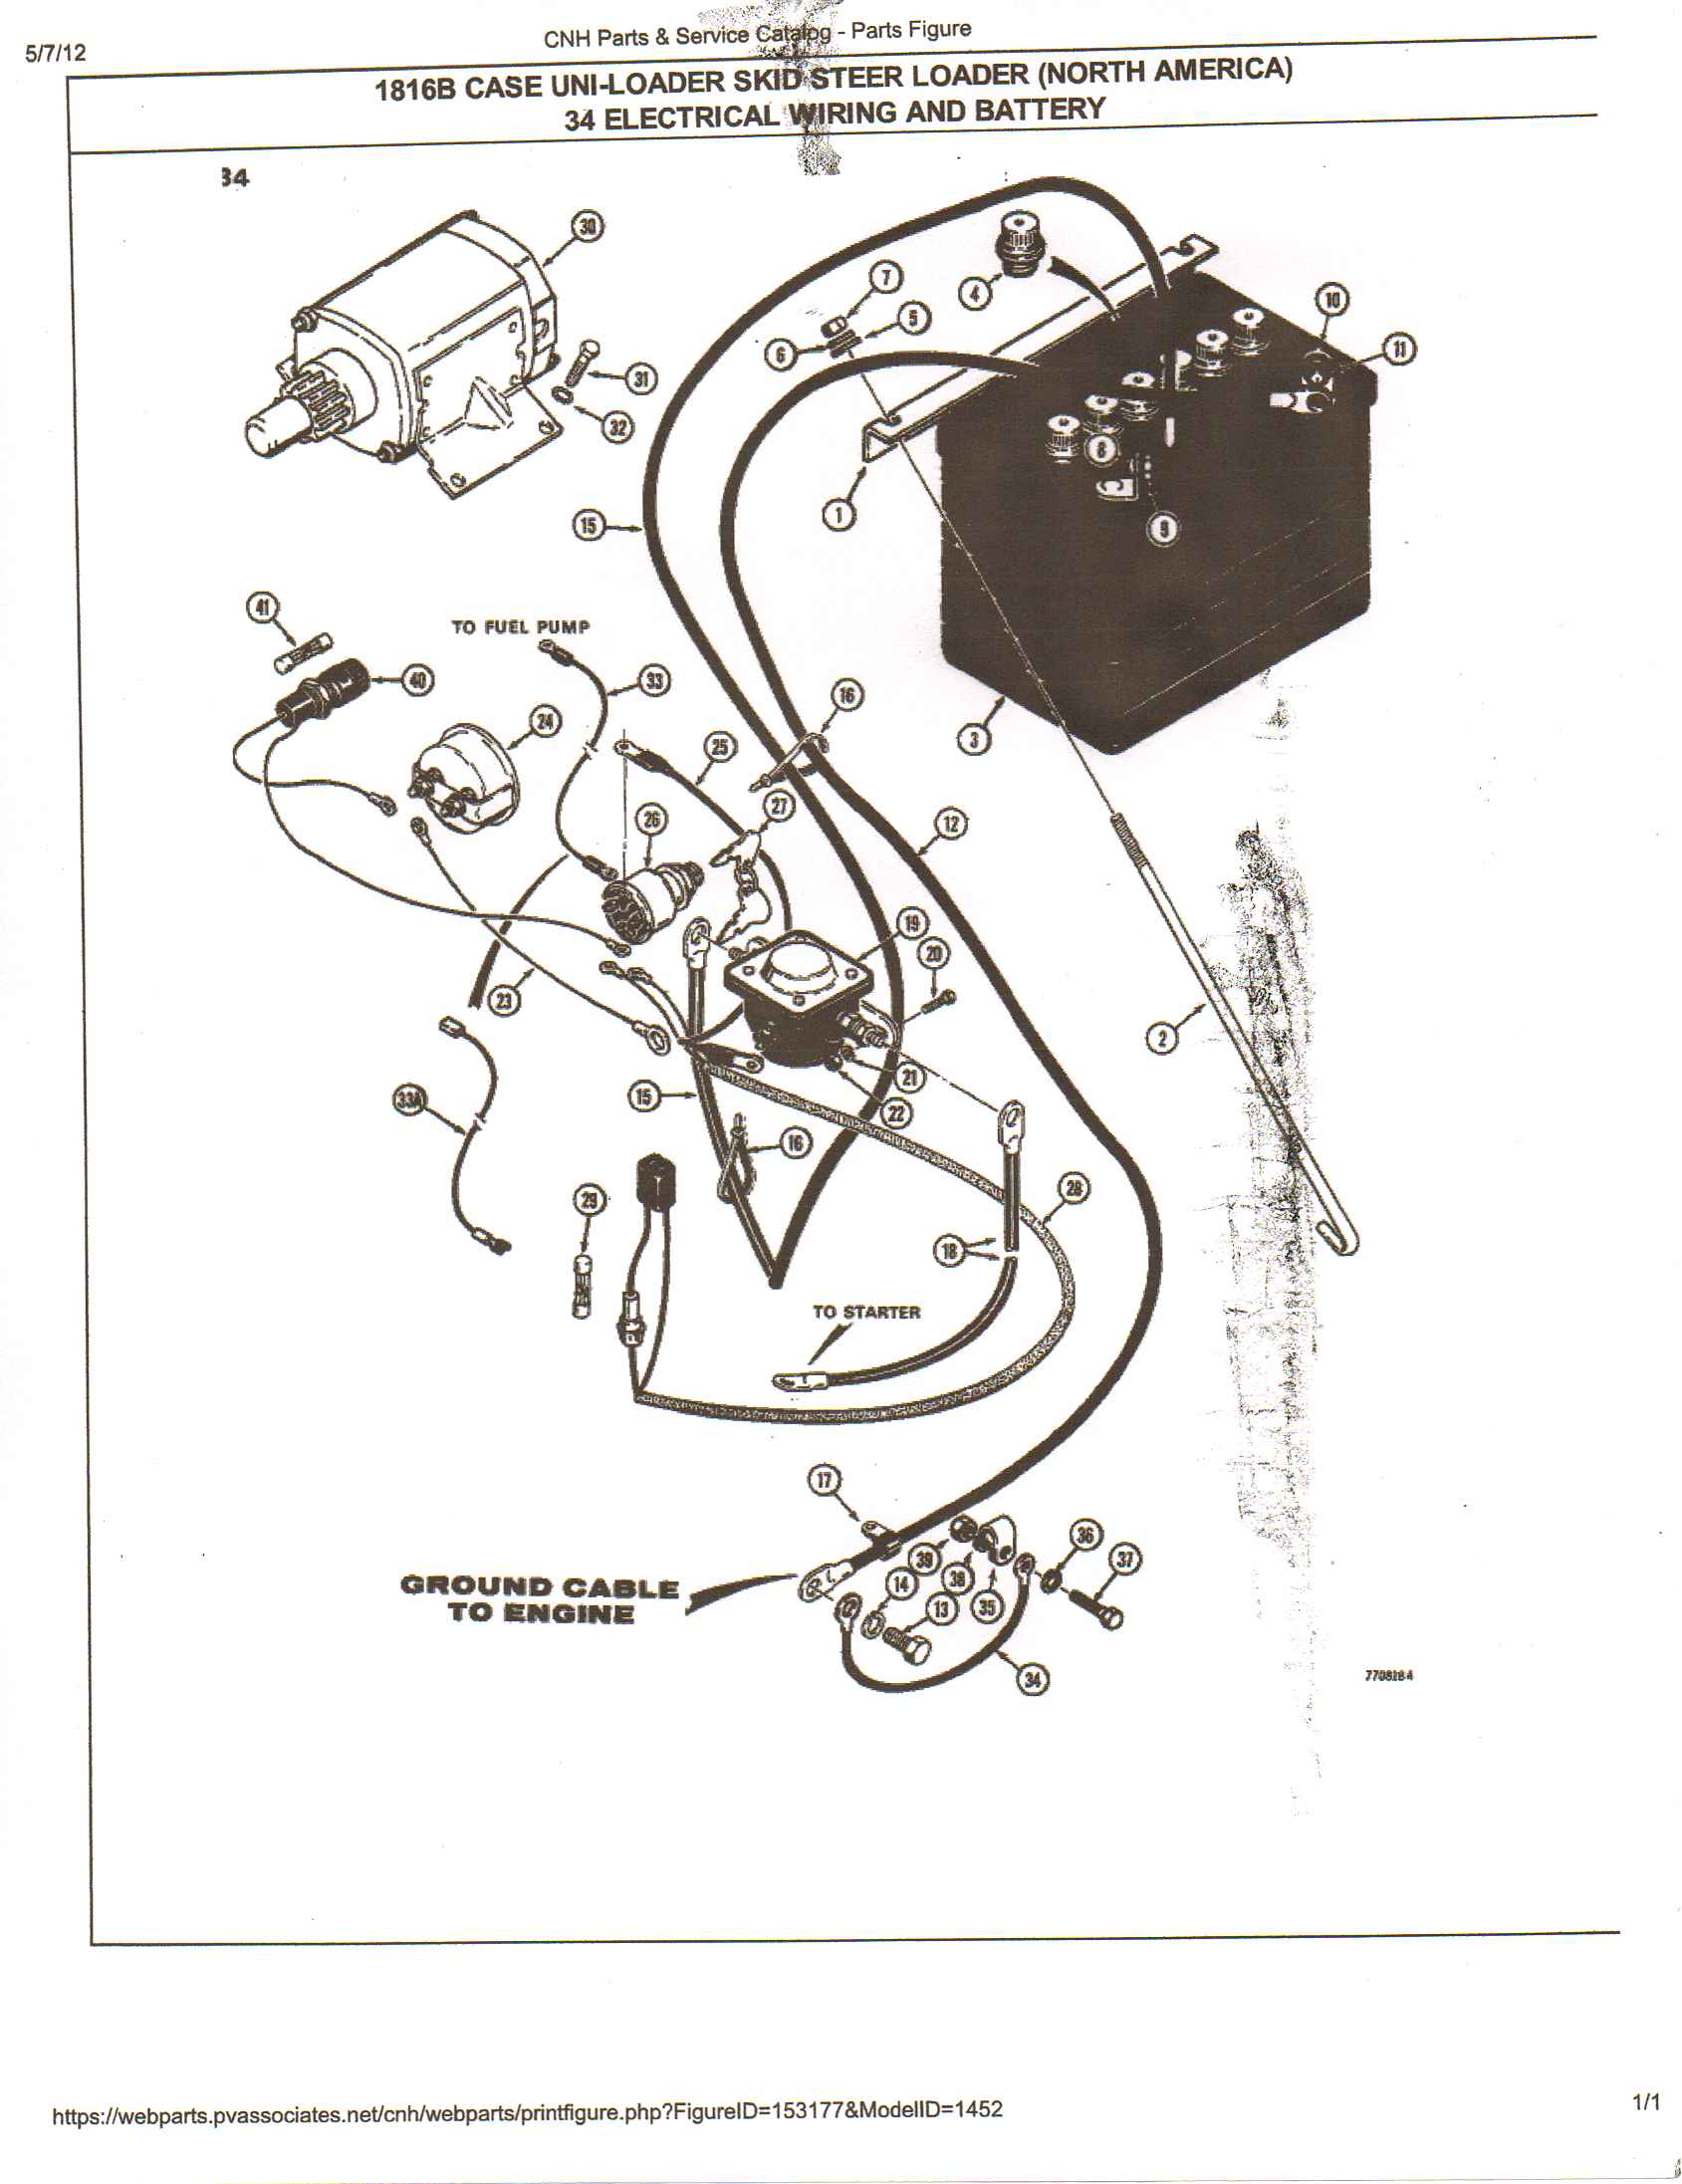 I Need A Wiring Diagram For An 1816b Case Skidsteer  Any